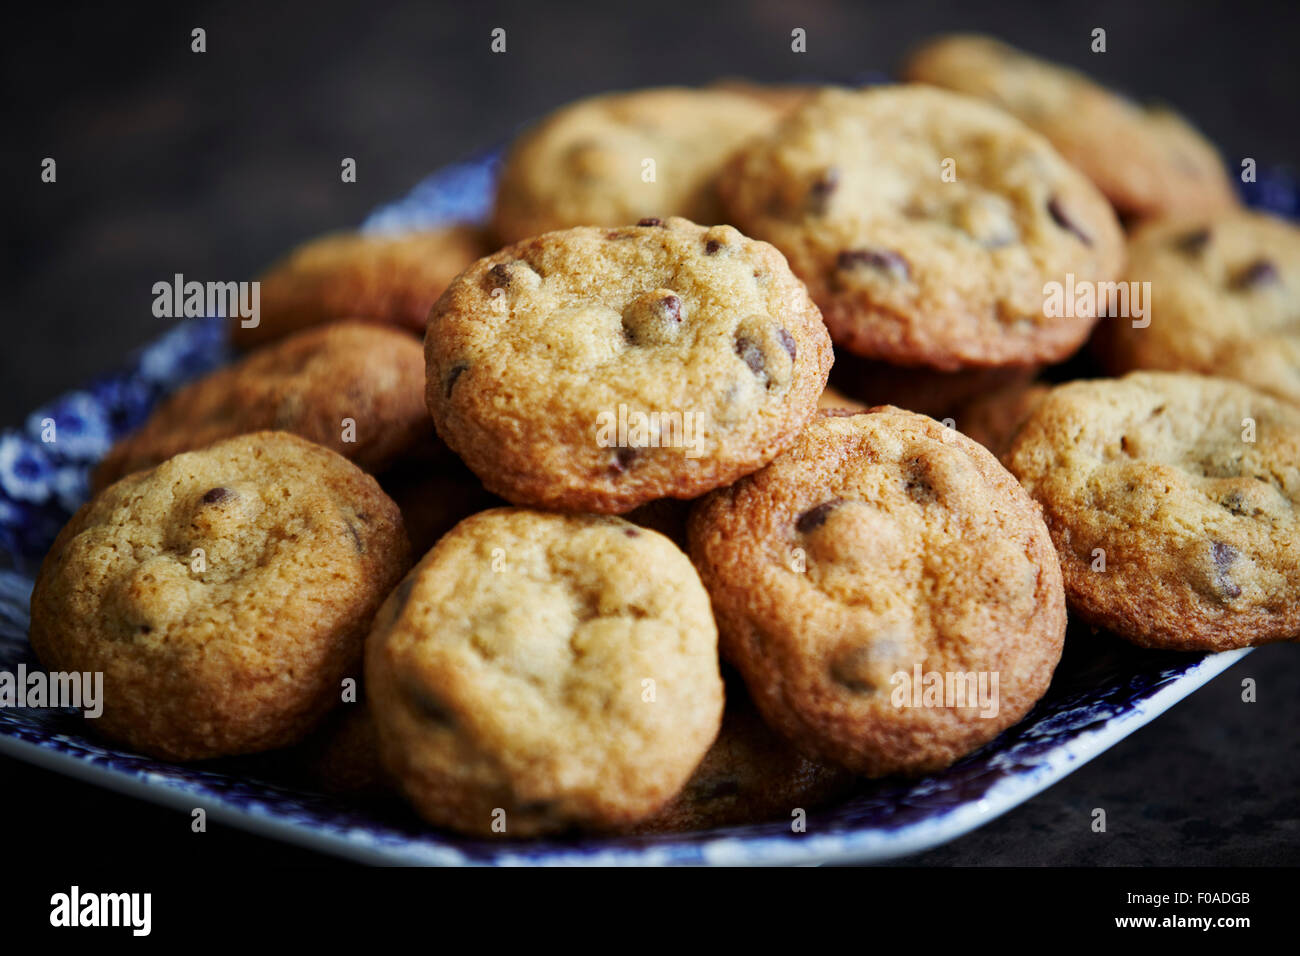 Homemade cookies, close up - Stock Image